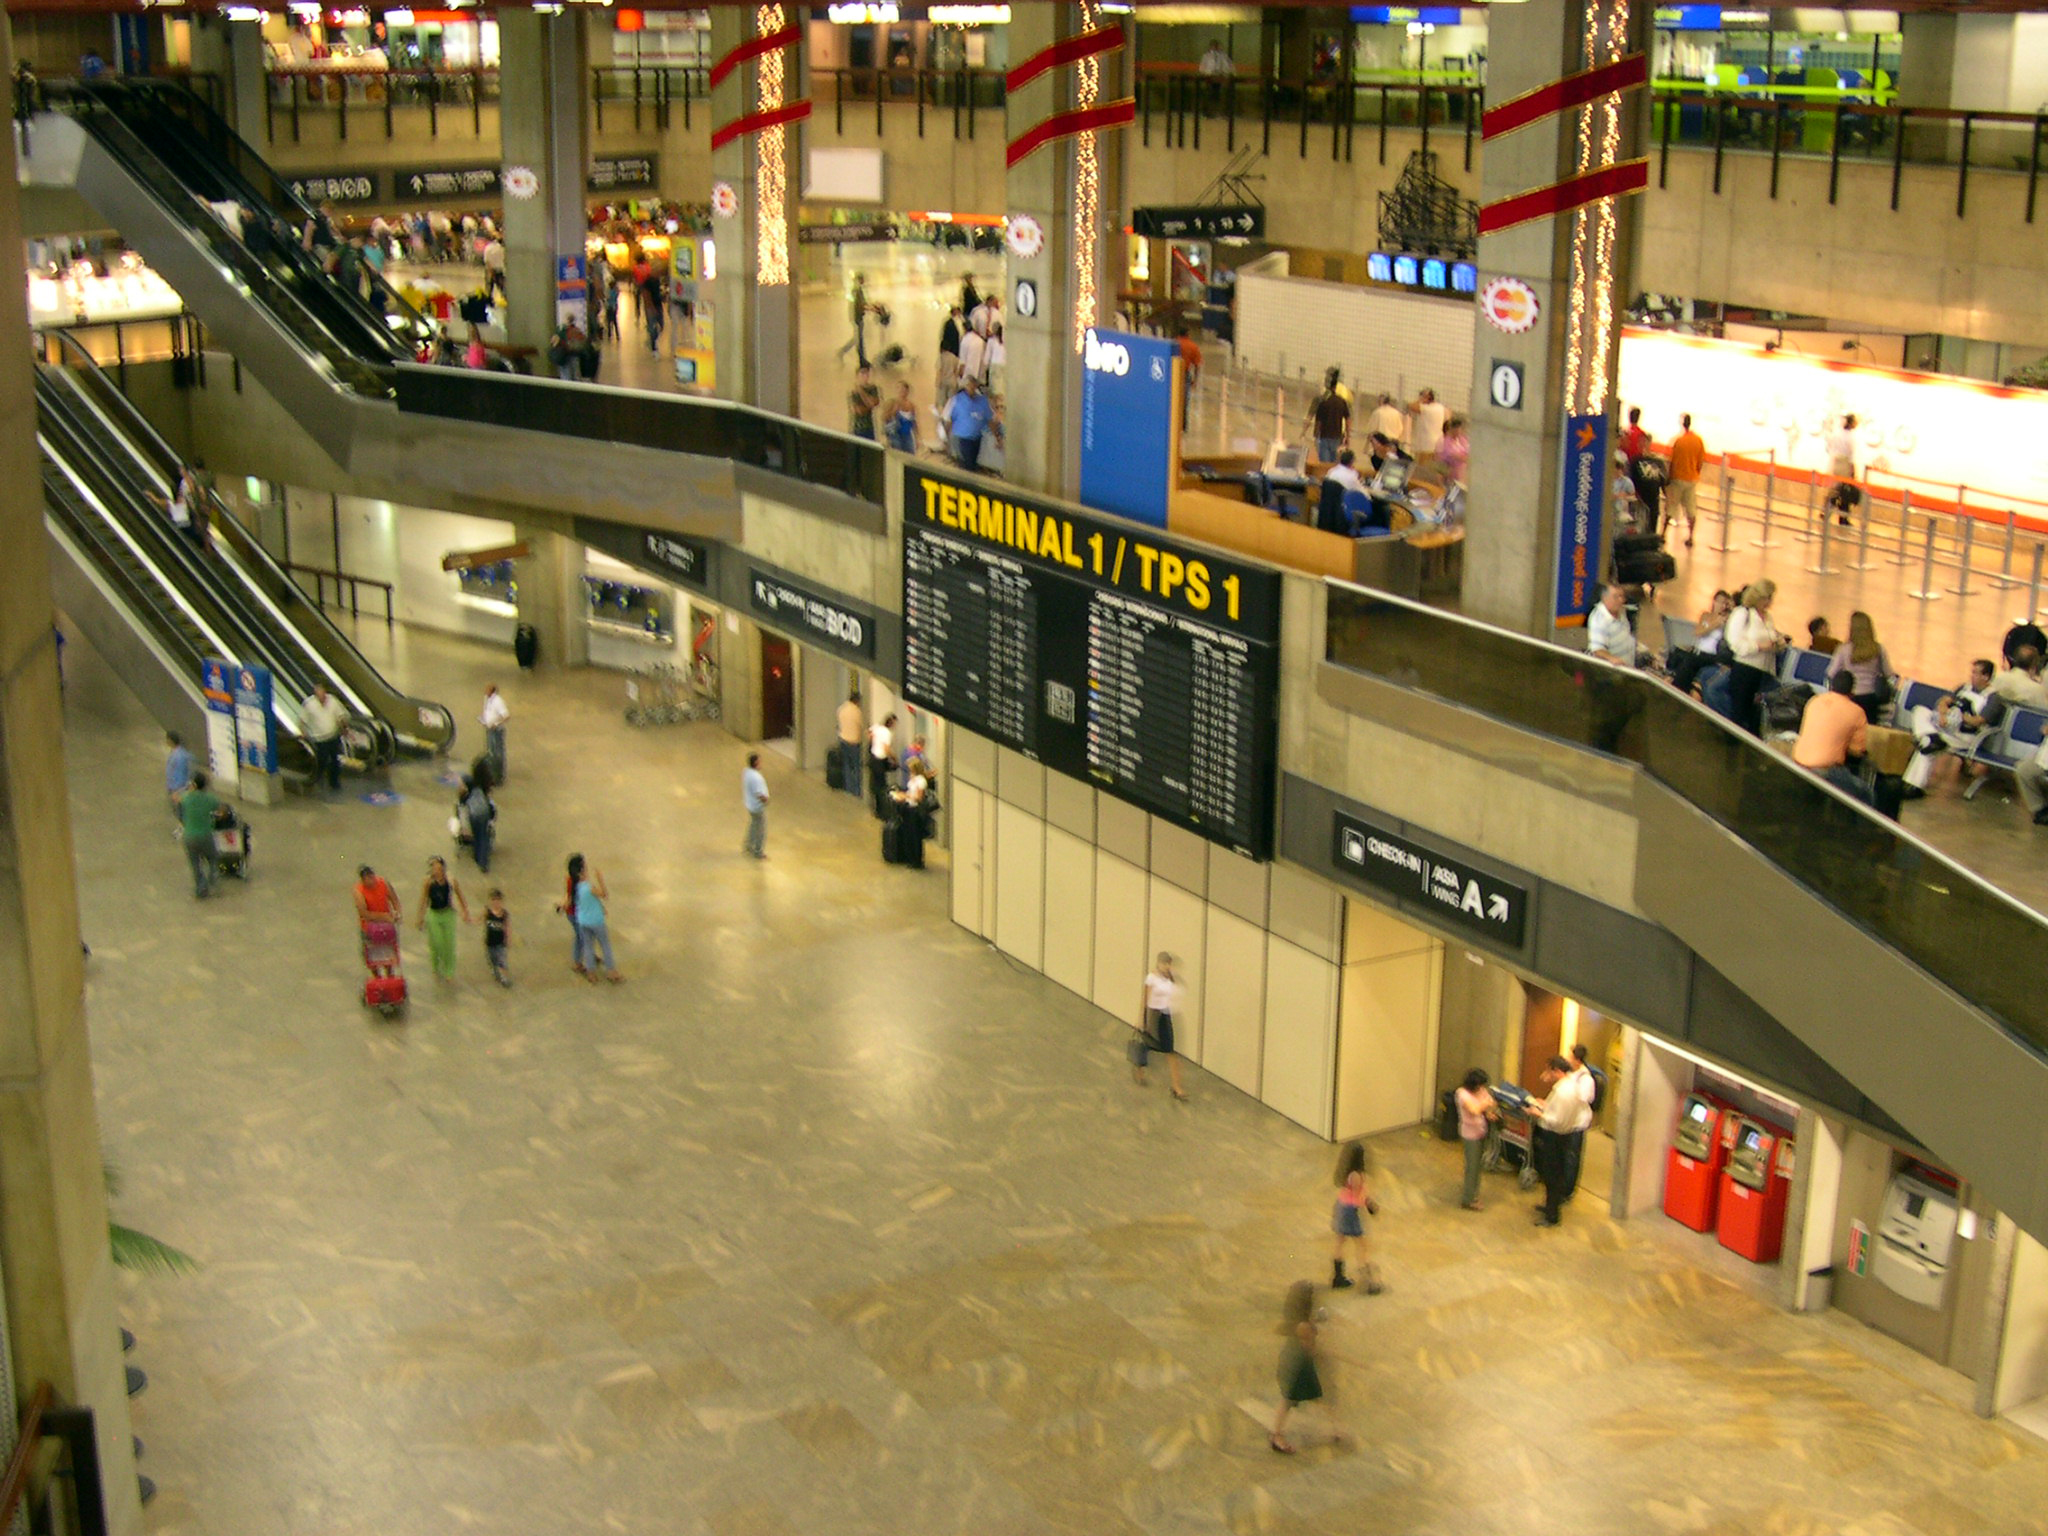 http://upload.wikimedia.org/wikipedia/commons/d/d3/AeroportoGuarulhos_TPS1-Interno.jpg